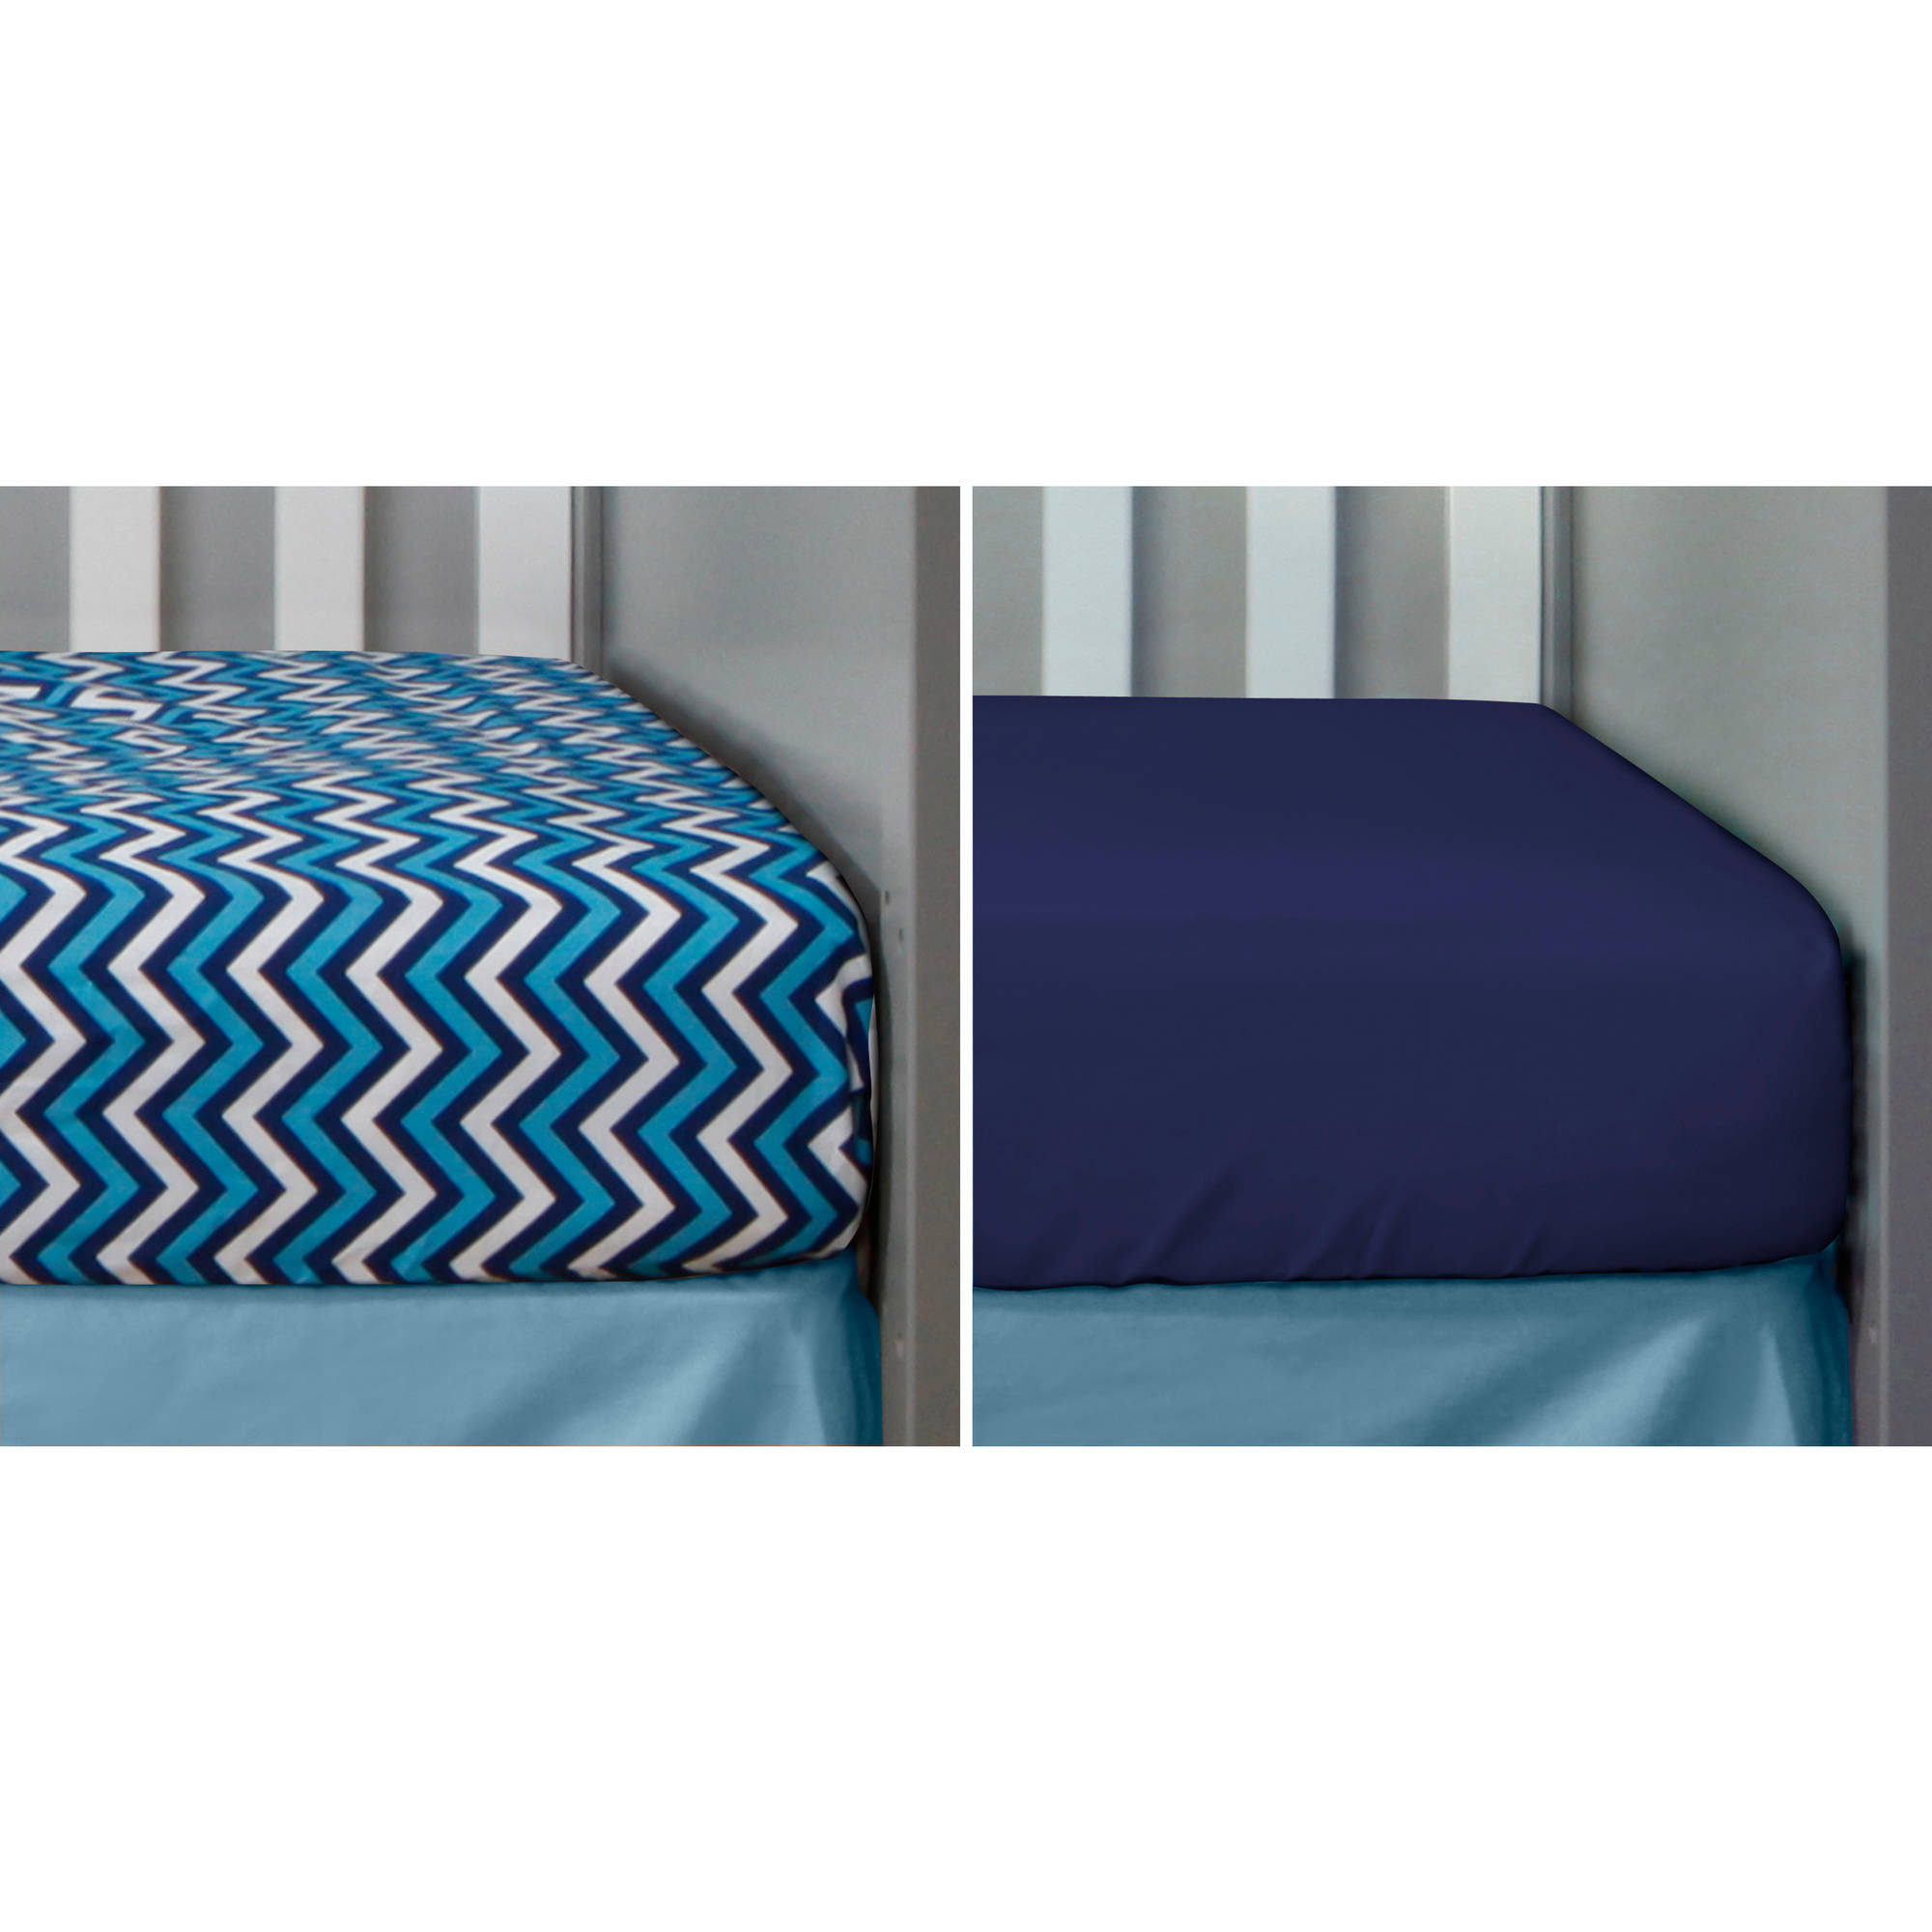 Bananafish Studio Anchors Away Set of 2 Crib Sheets, Zigzag/Navy Solid